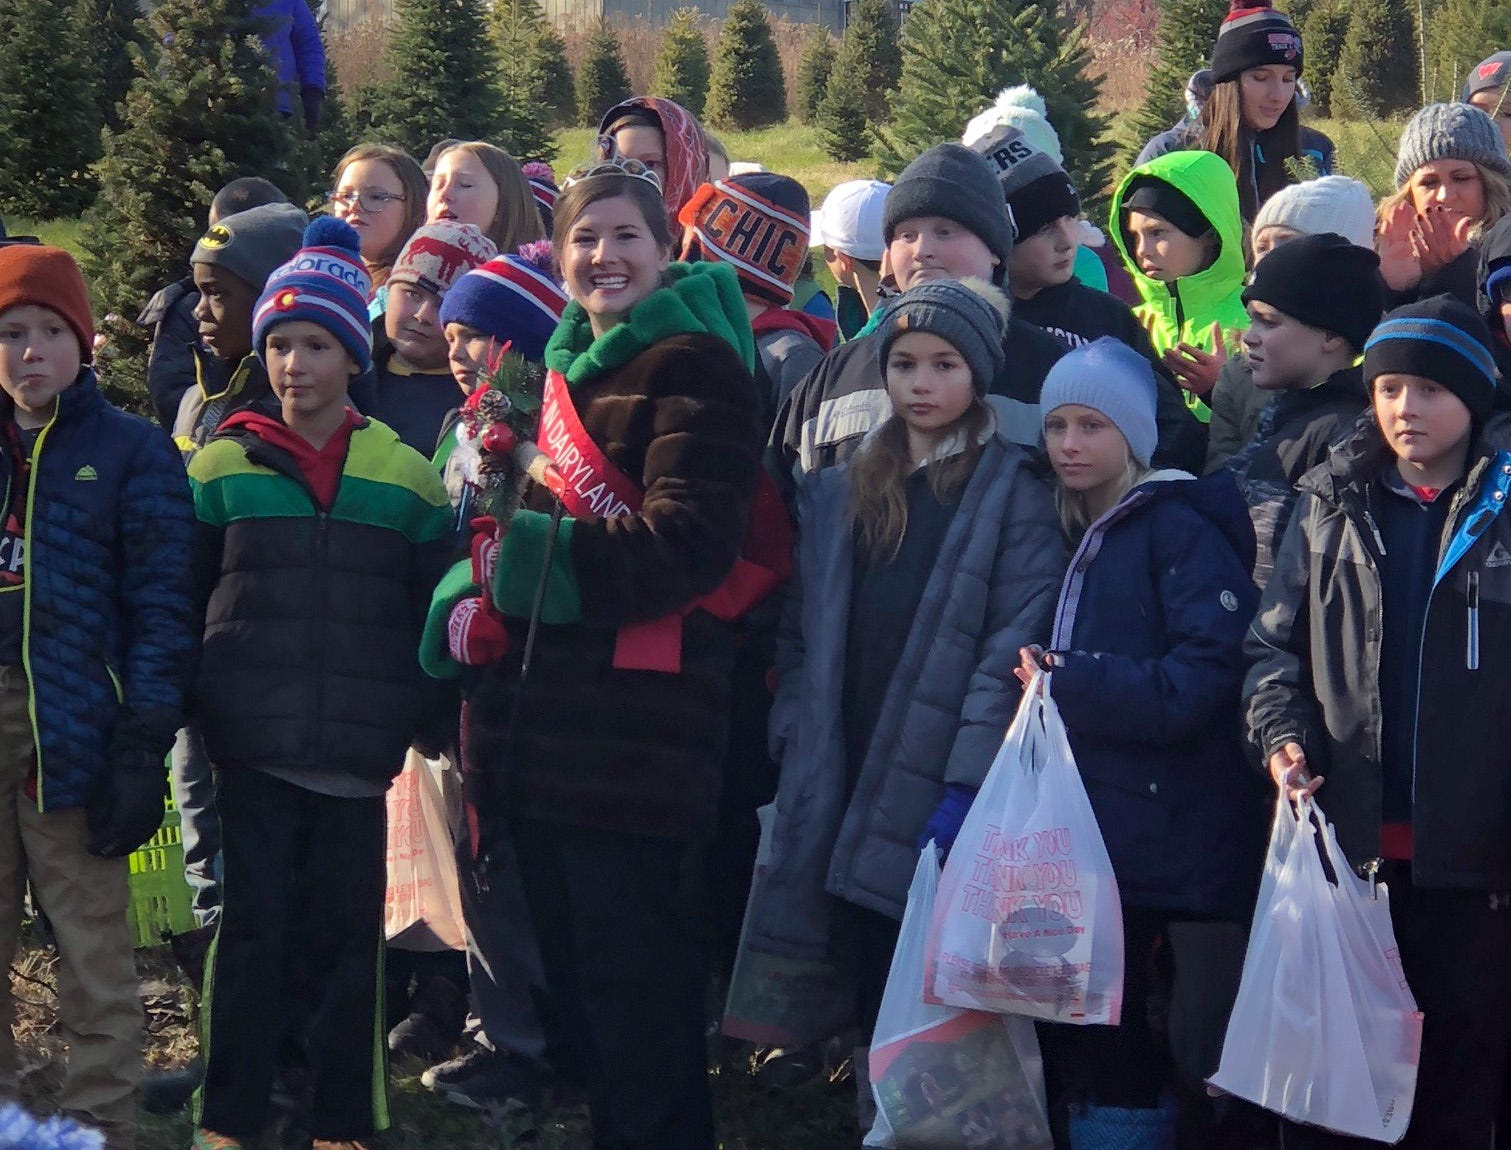 Surrounded by New Glarus and Albany fourth and fifth grade students, Alice in Dairyland, Kaitlyn Riley, gets ready to help cut a tree at Lancaster's Winterberry Tree Farm in Brooklyn to mark the 2018 Christmas tree season on Nov. 15.